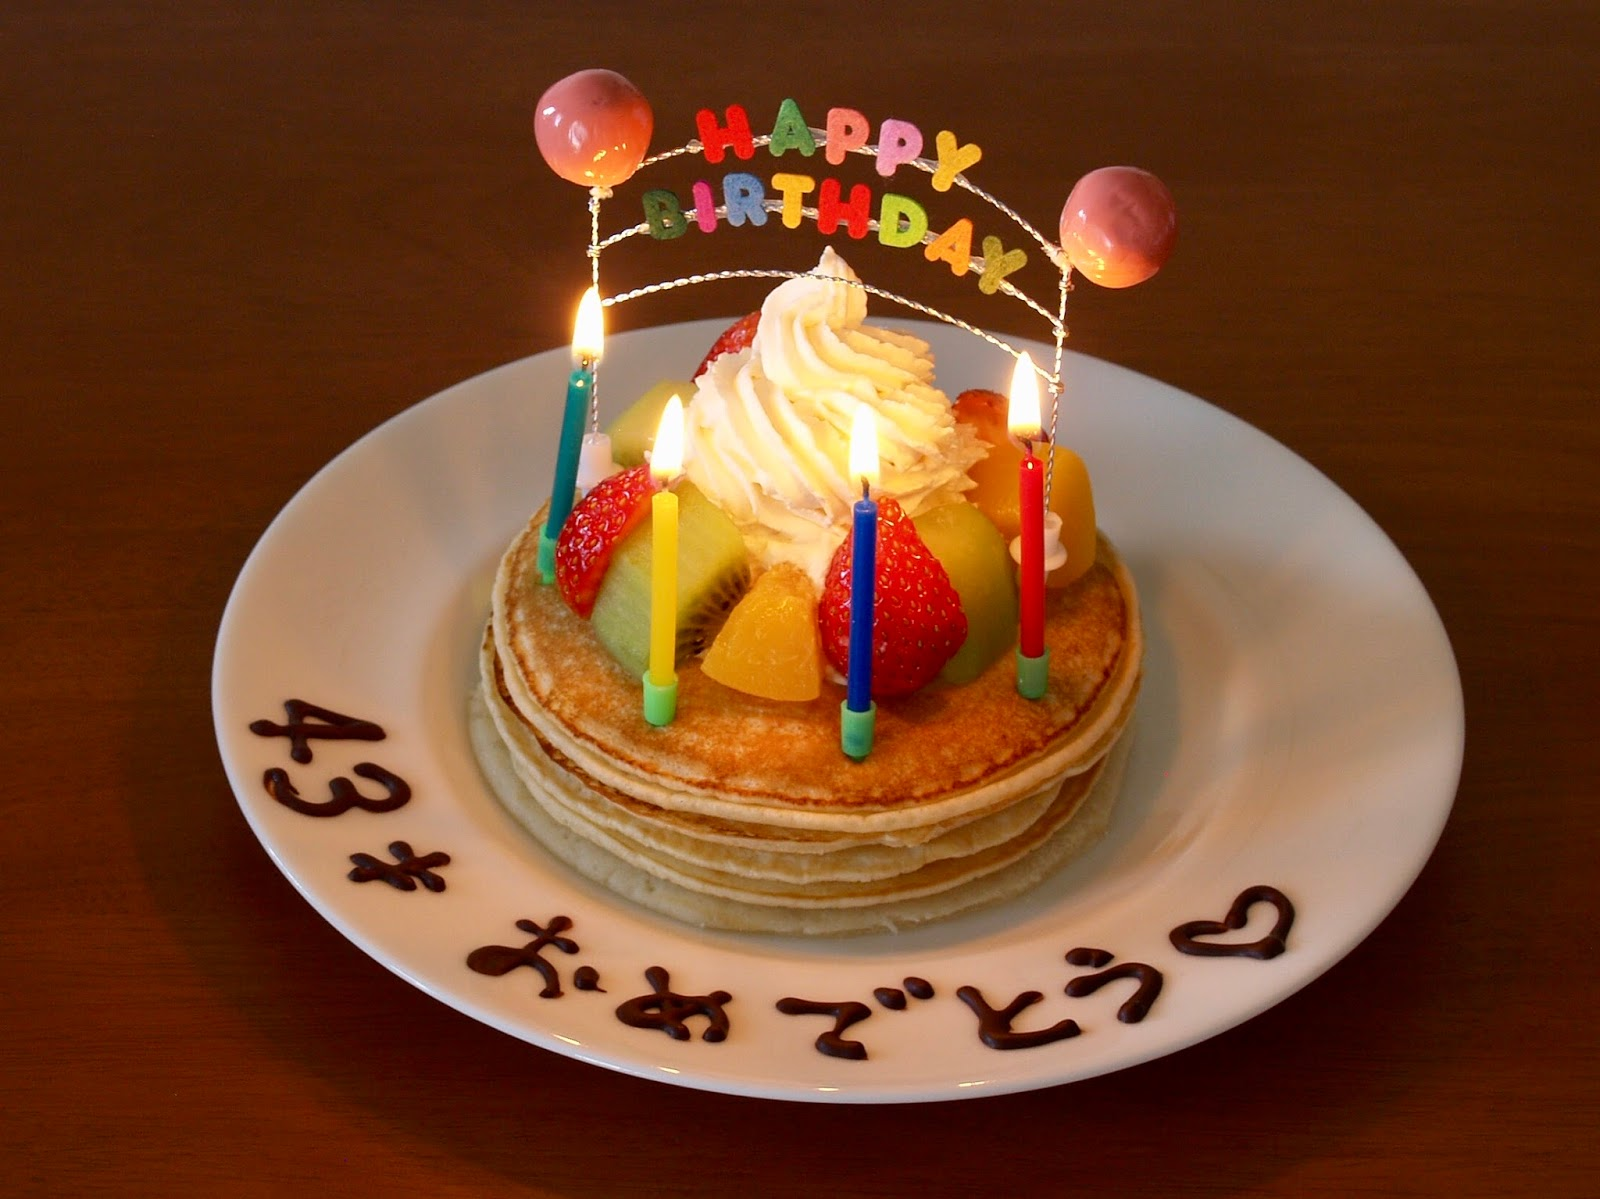 Remarkable How To Make Birthday Cake Pancakes Cake Decorating Idea Funny Birthday Cards Online Chimdamsfinfo